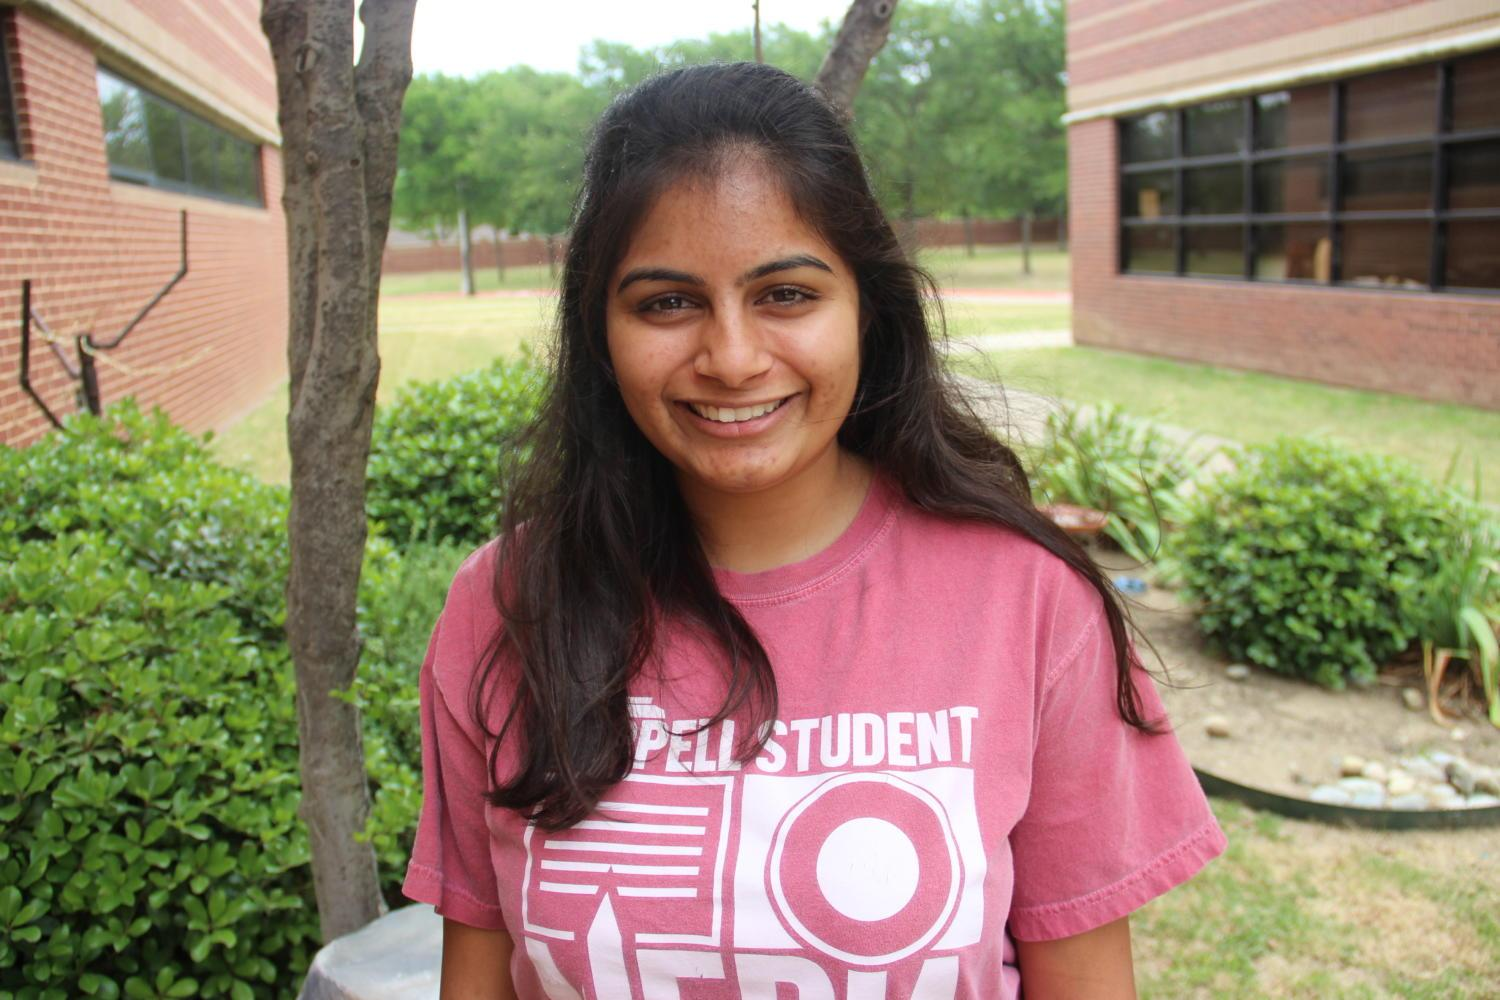 Senior+Sakshi+Venkatraman+reflects+on+her+time+at+CHS+and+her+feelings+about+leaving+for+college.+Photo+by+Amanda+Hair.+